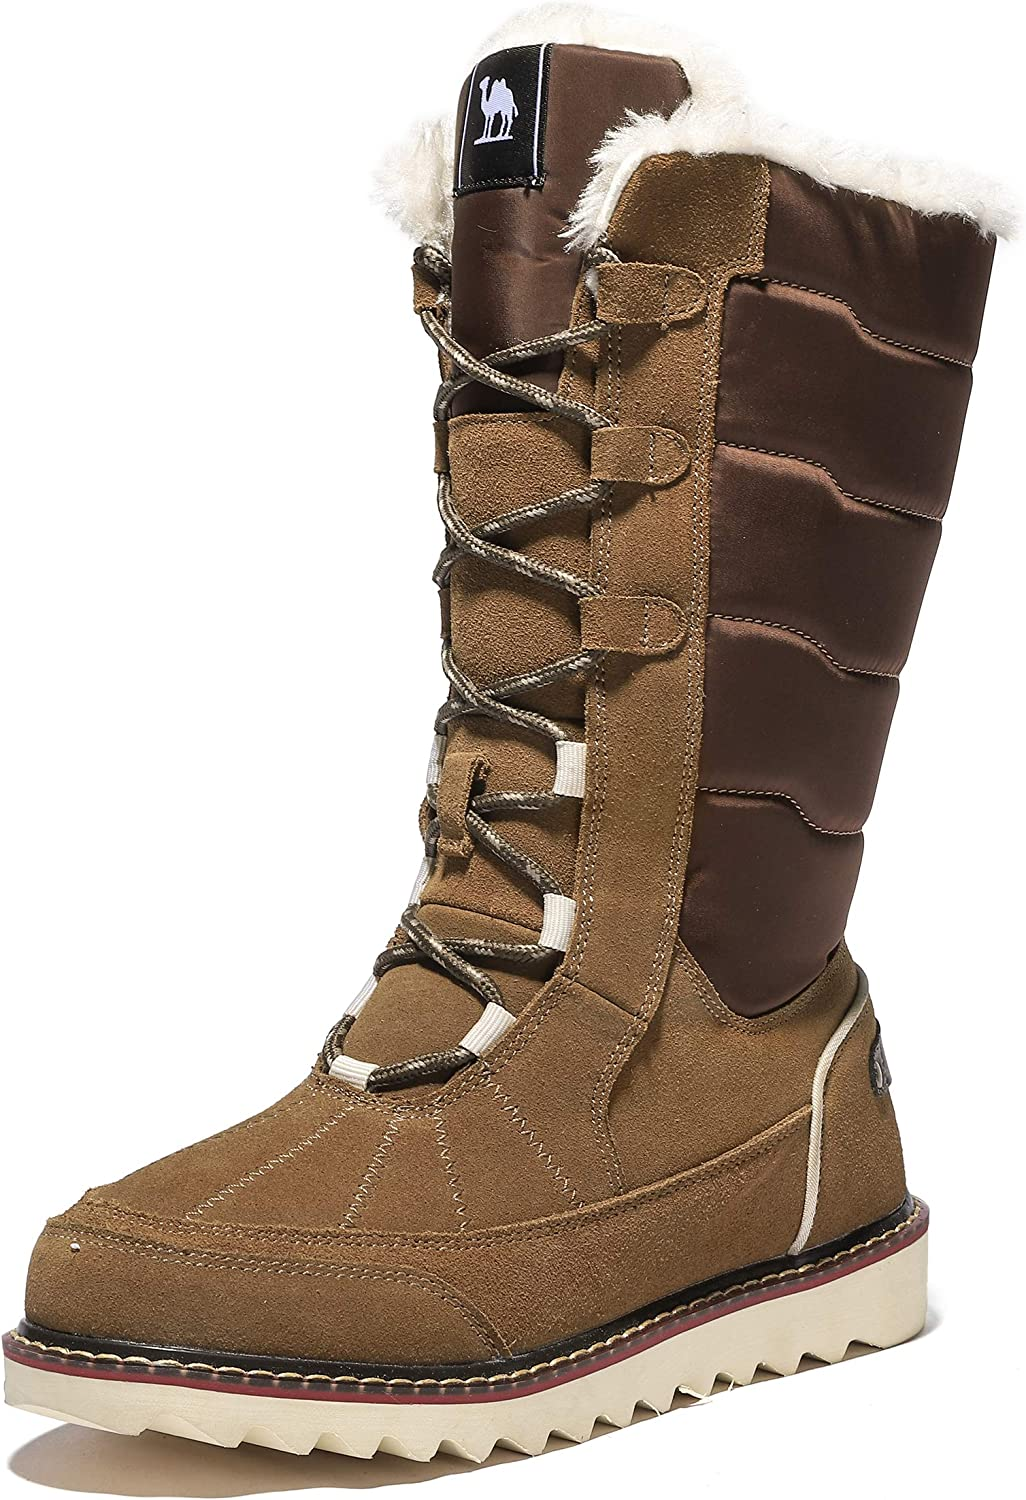 CAMELSPORTS Women's Snow Boots